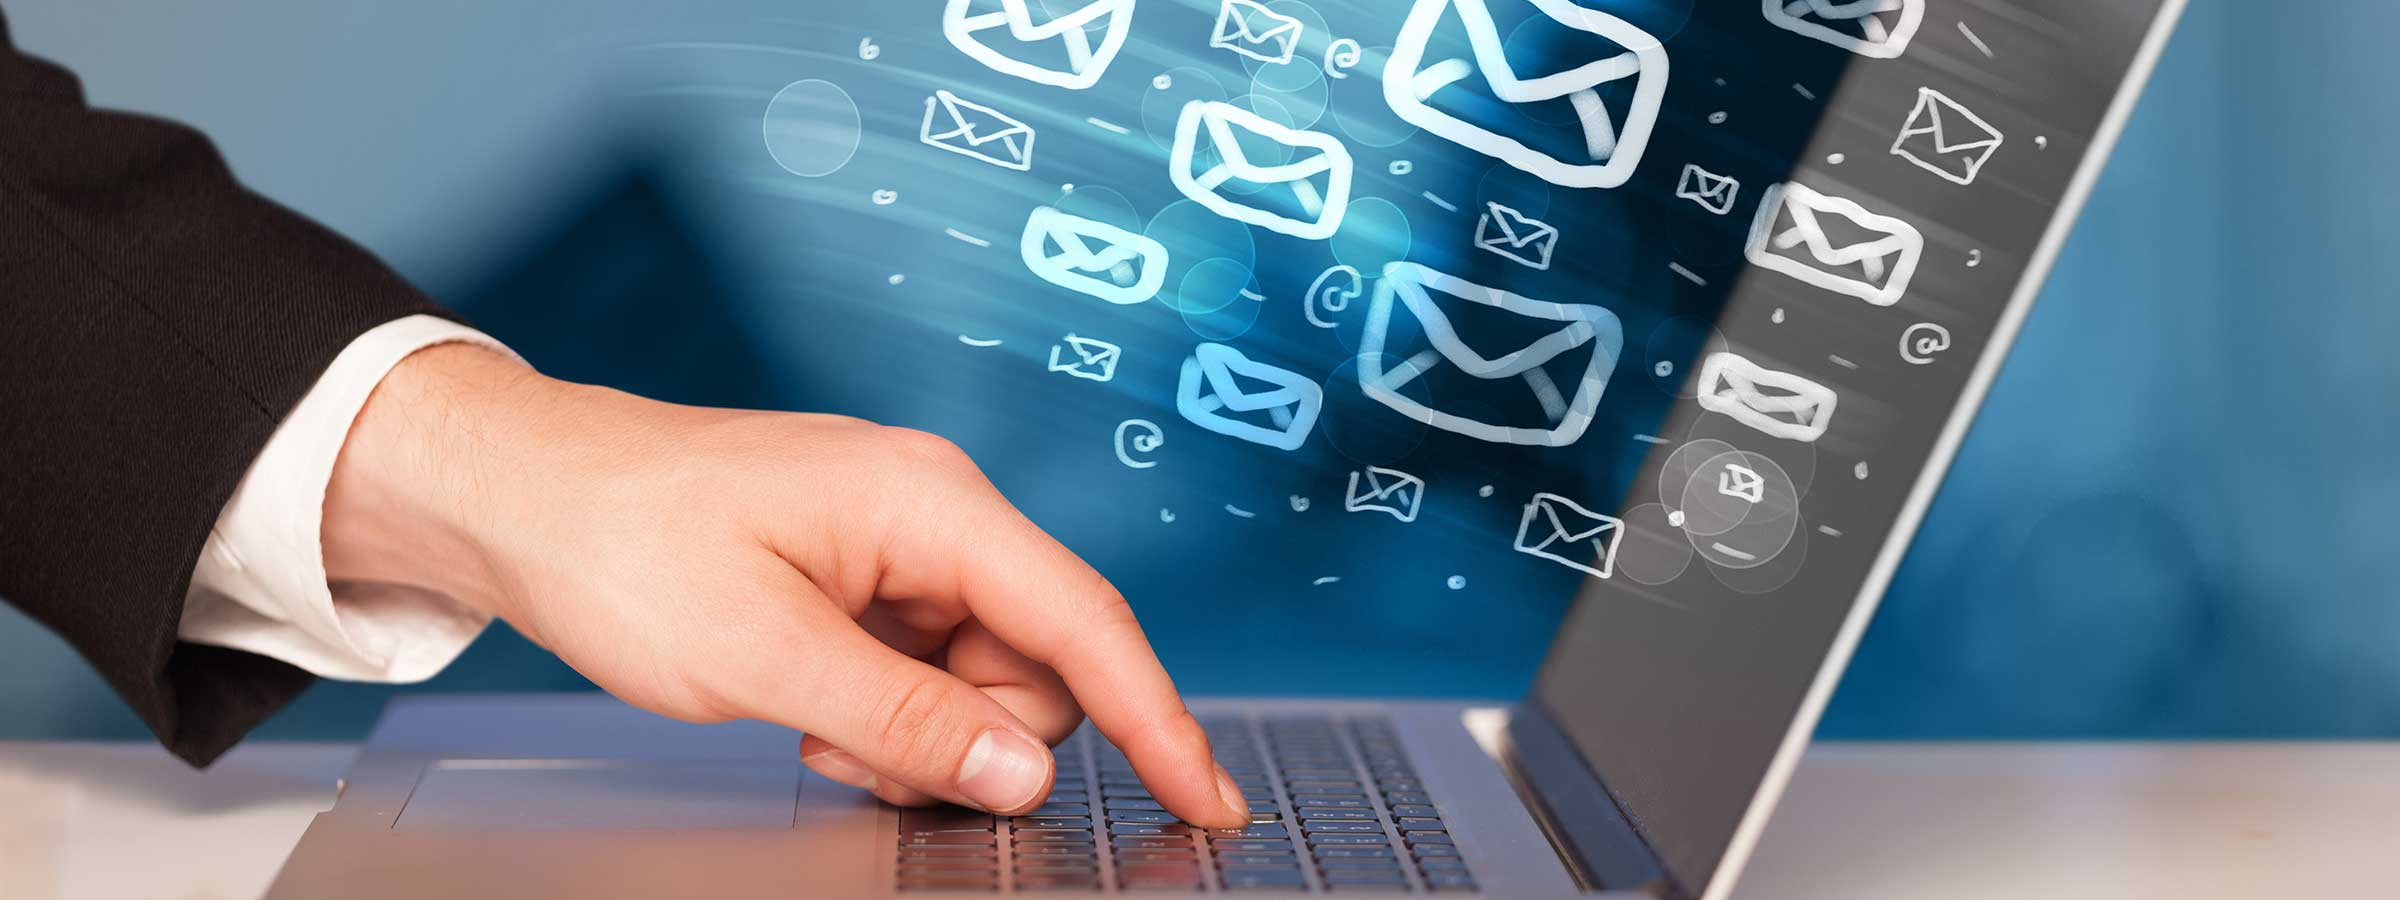 The benefits of using email campaigns